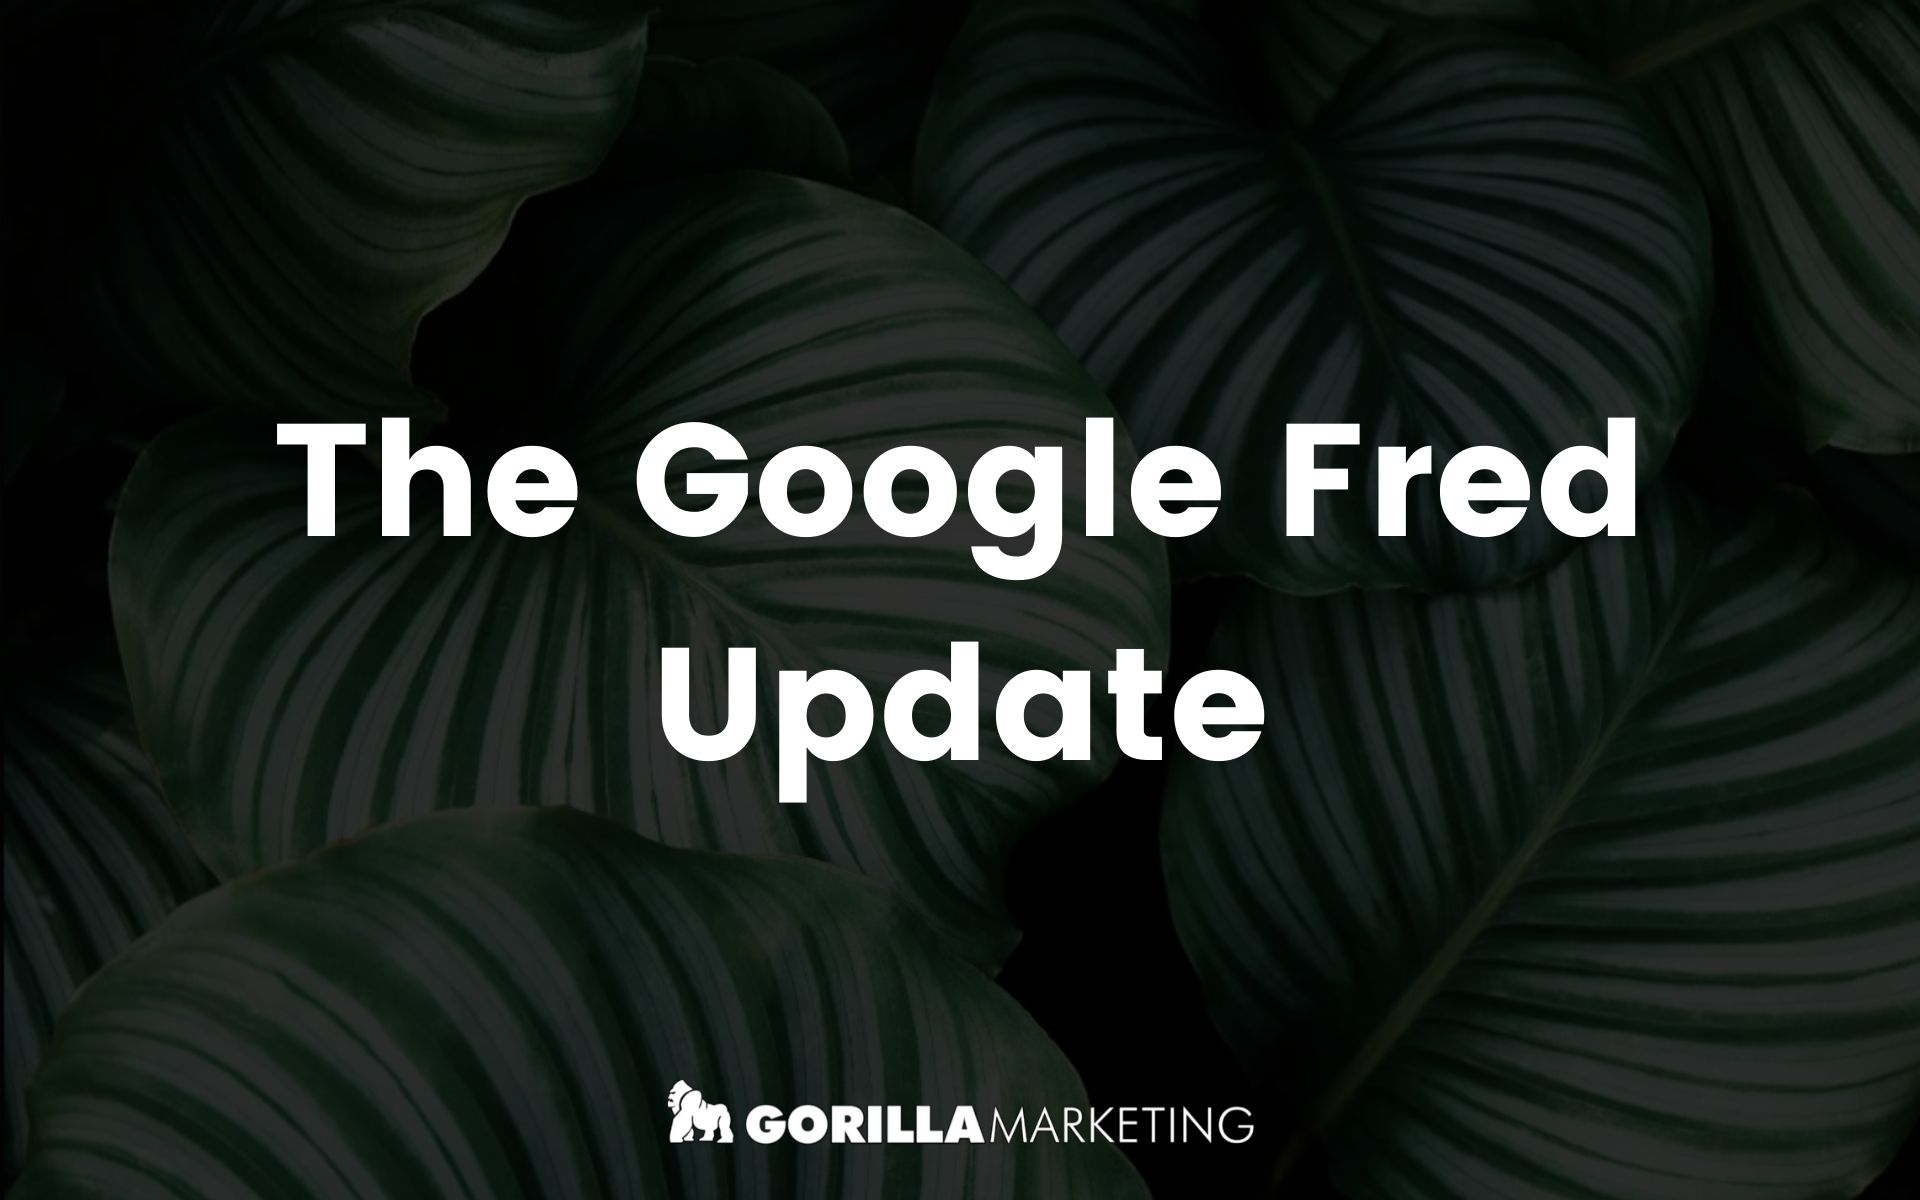 The Google Fred Update